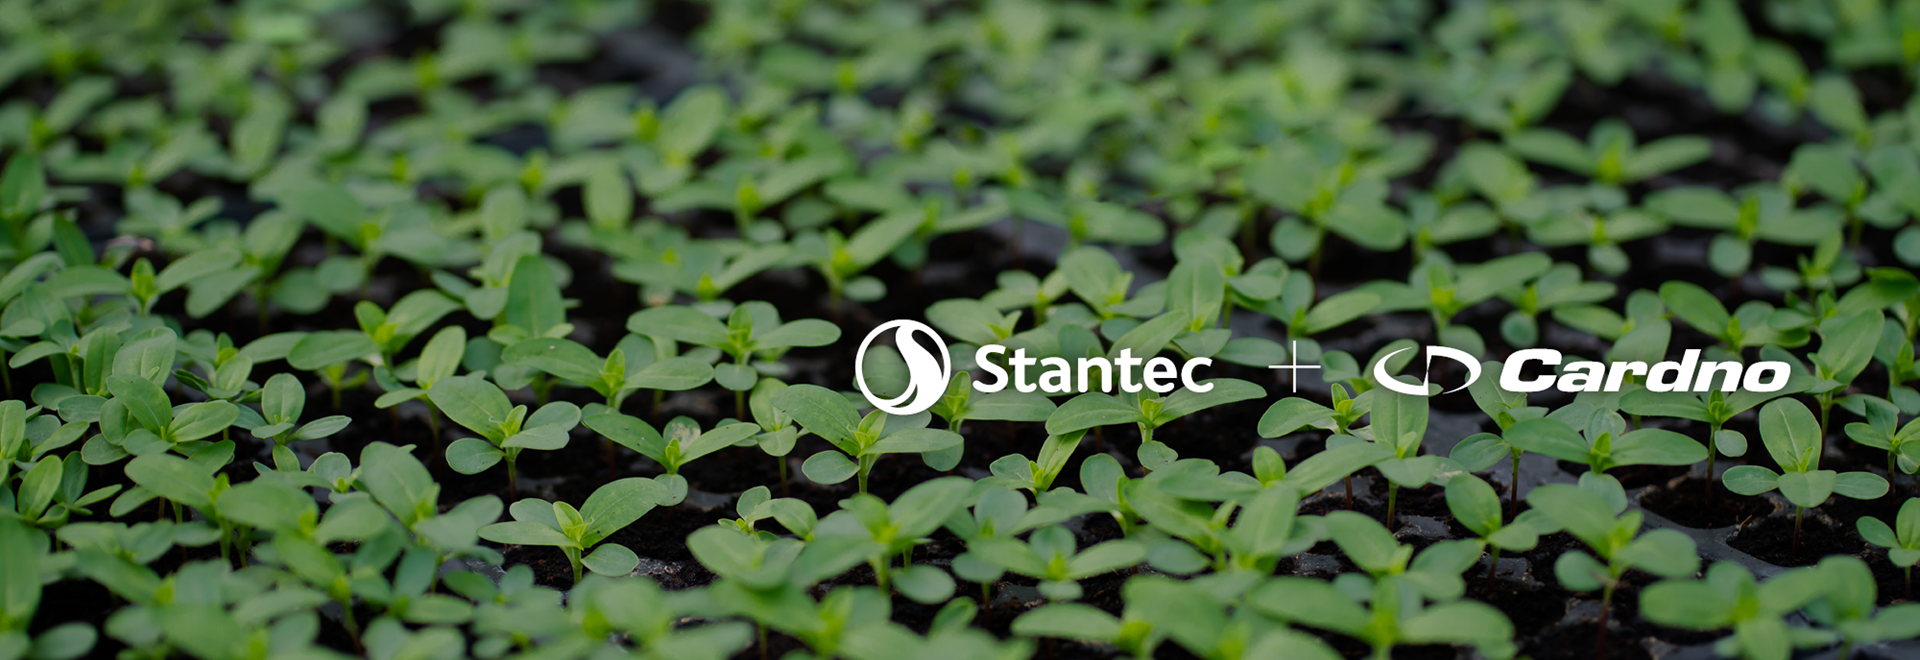 Stantec to acquire select Cardno businesses to grow Environmental Services and Infrastructure footprint